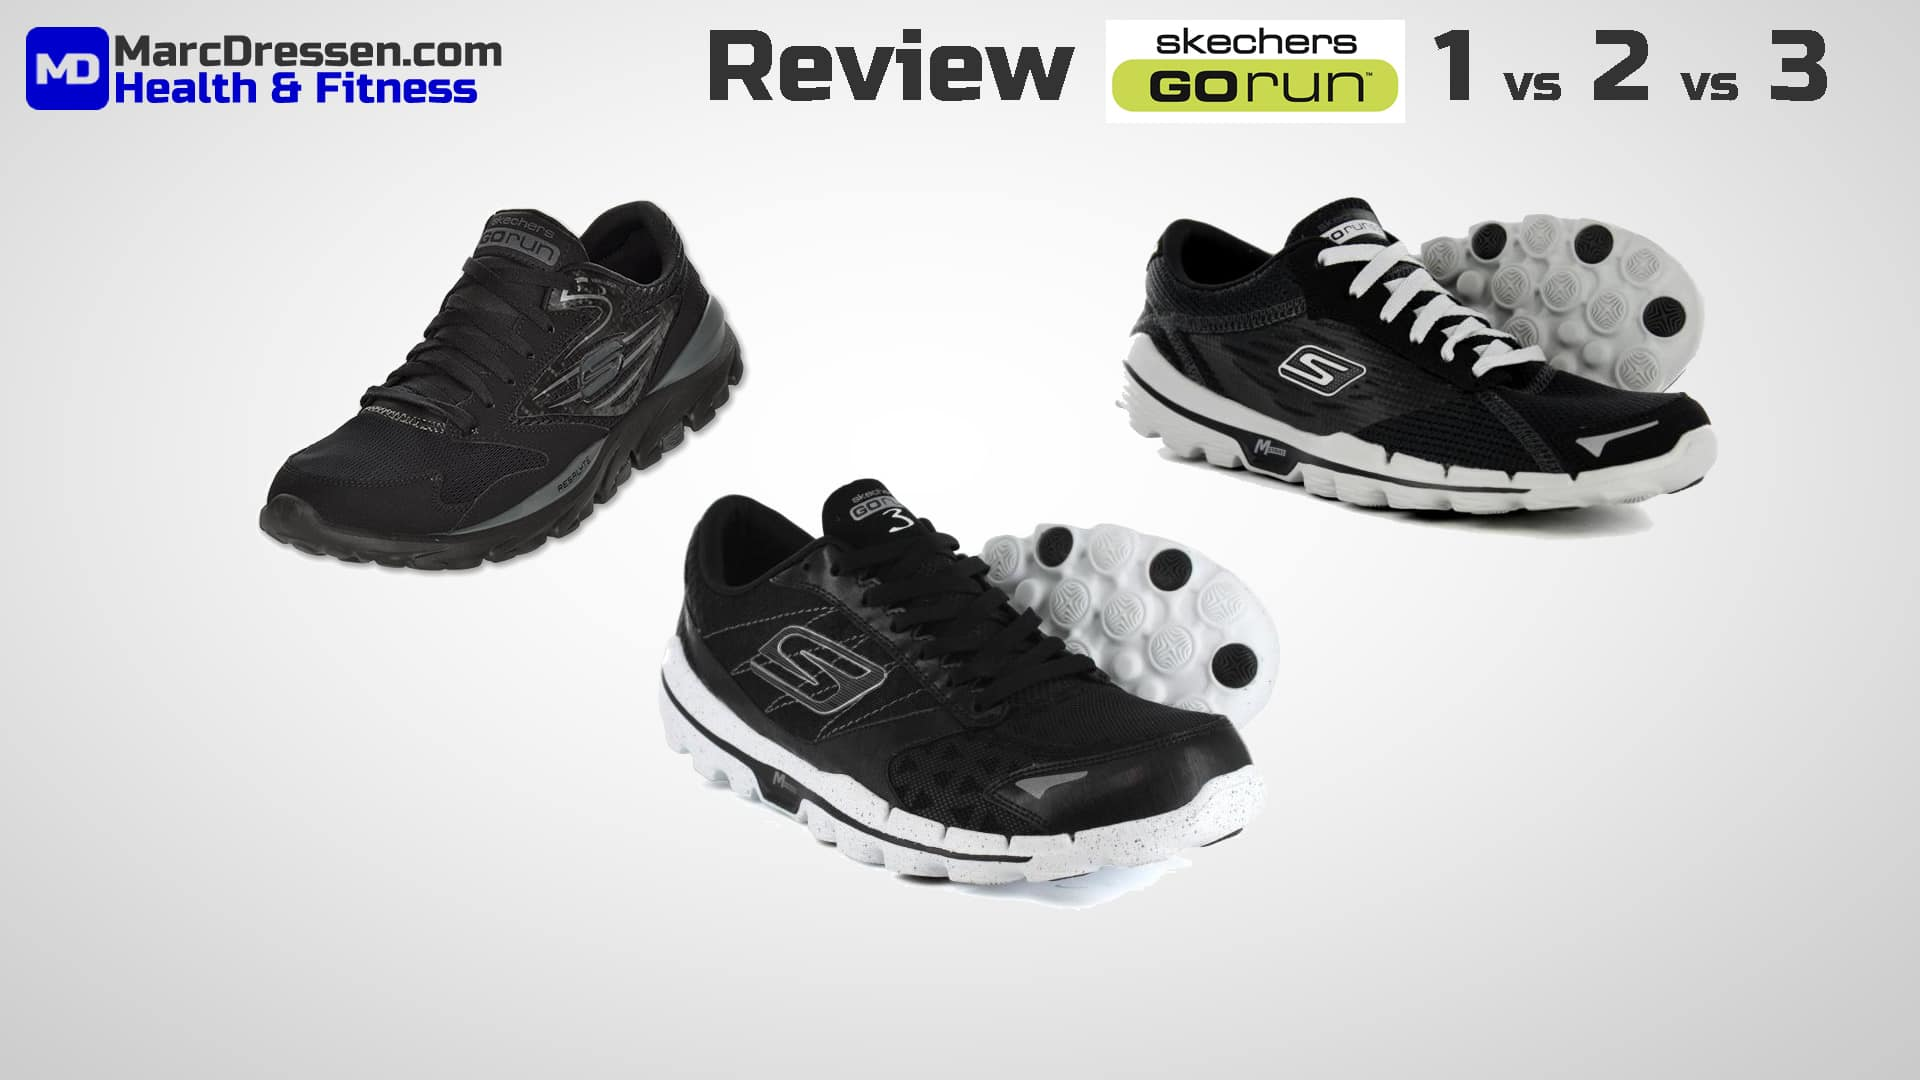 Sketchers Go Run 1 Vs 2 Vs 3 – Ultimate Review